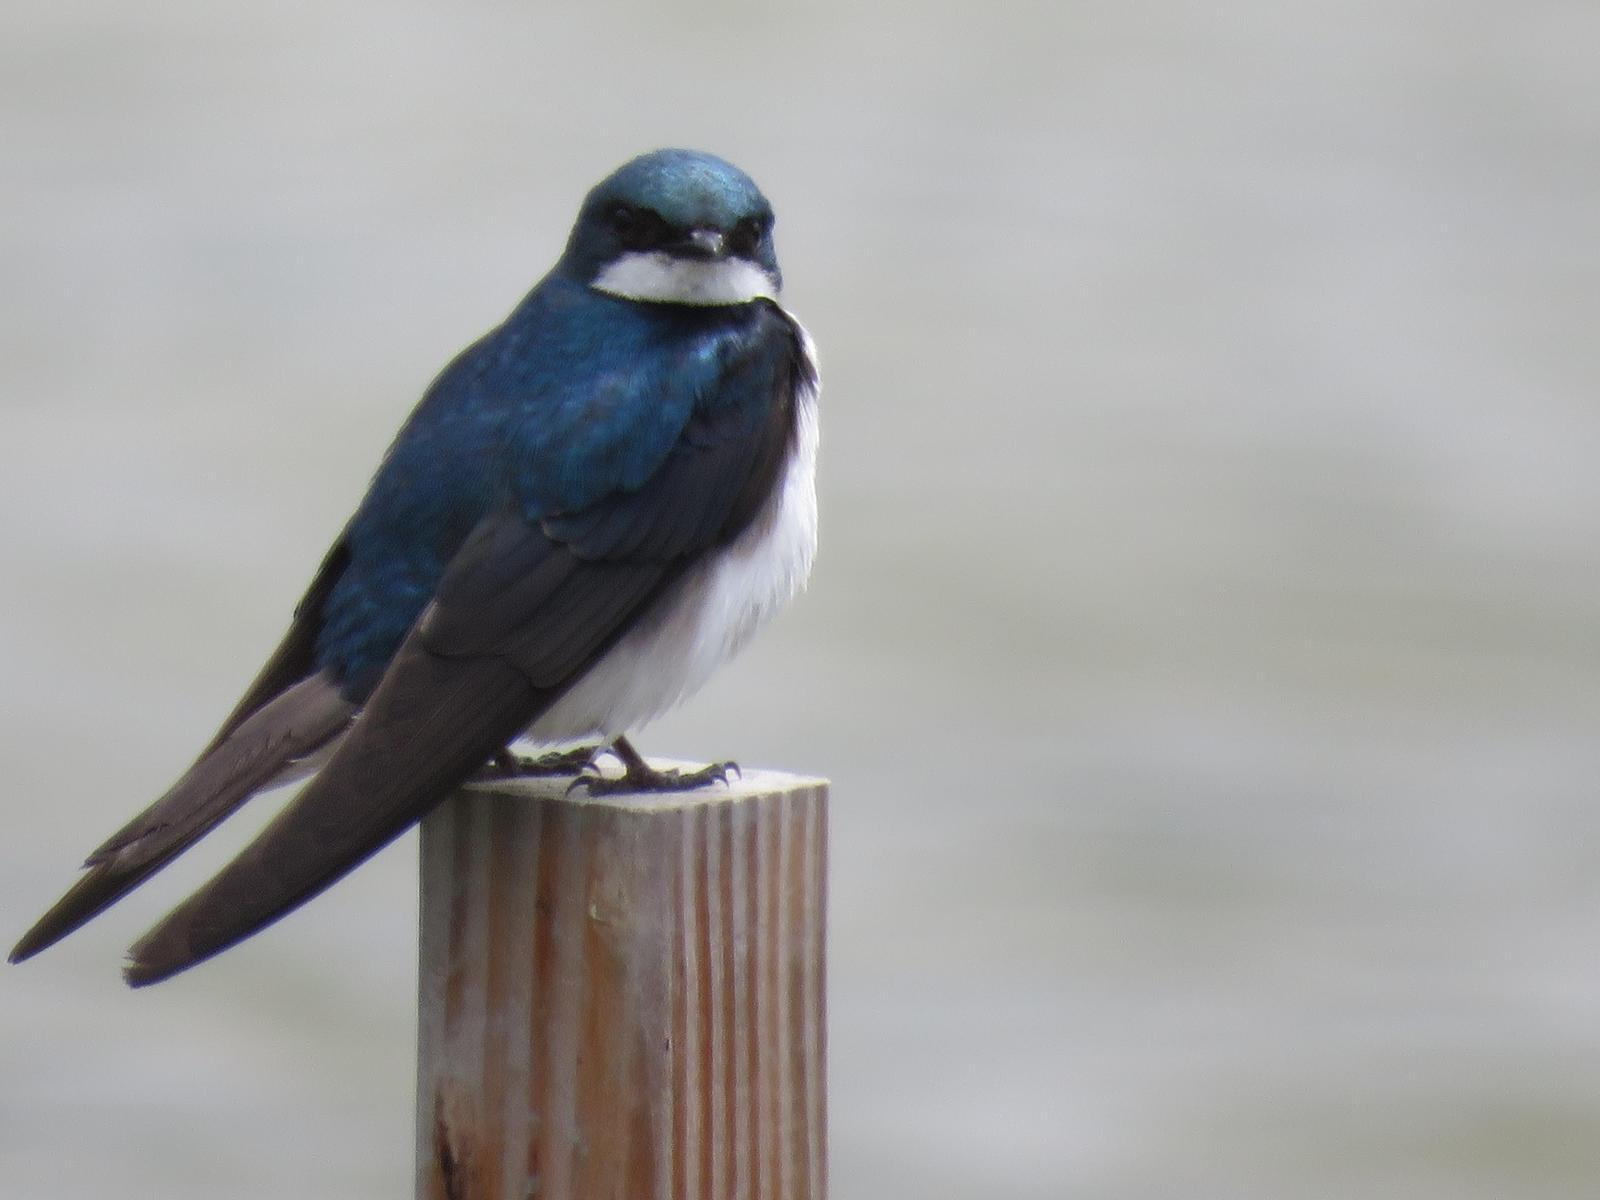 Tree Swallow Photo by Ted Goshulak